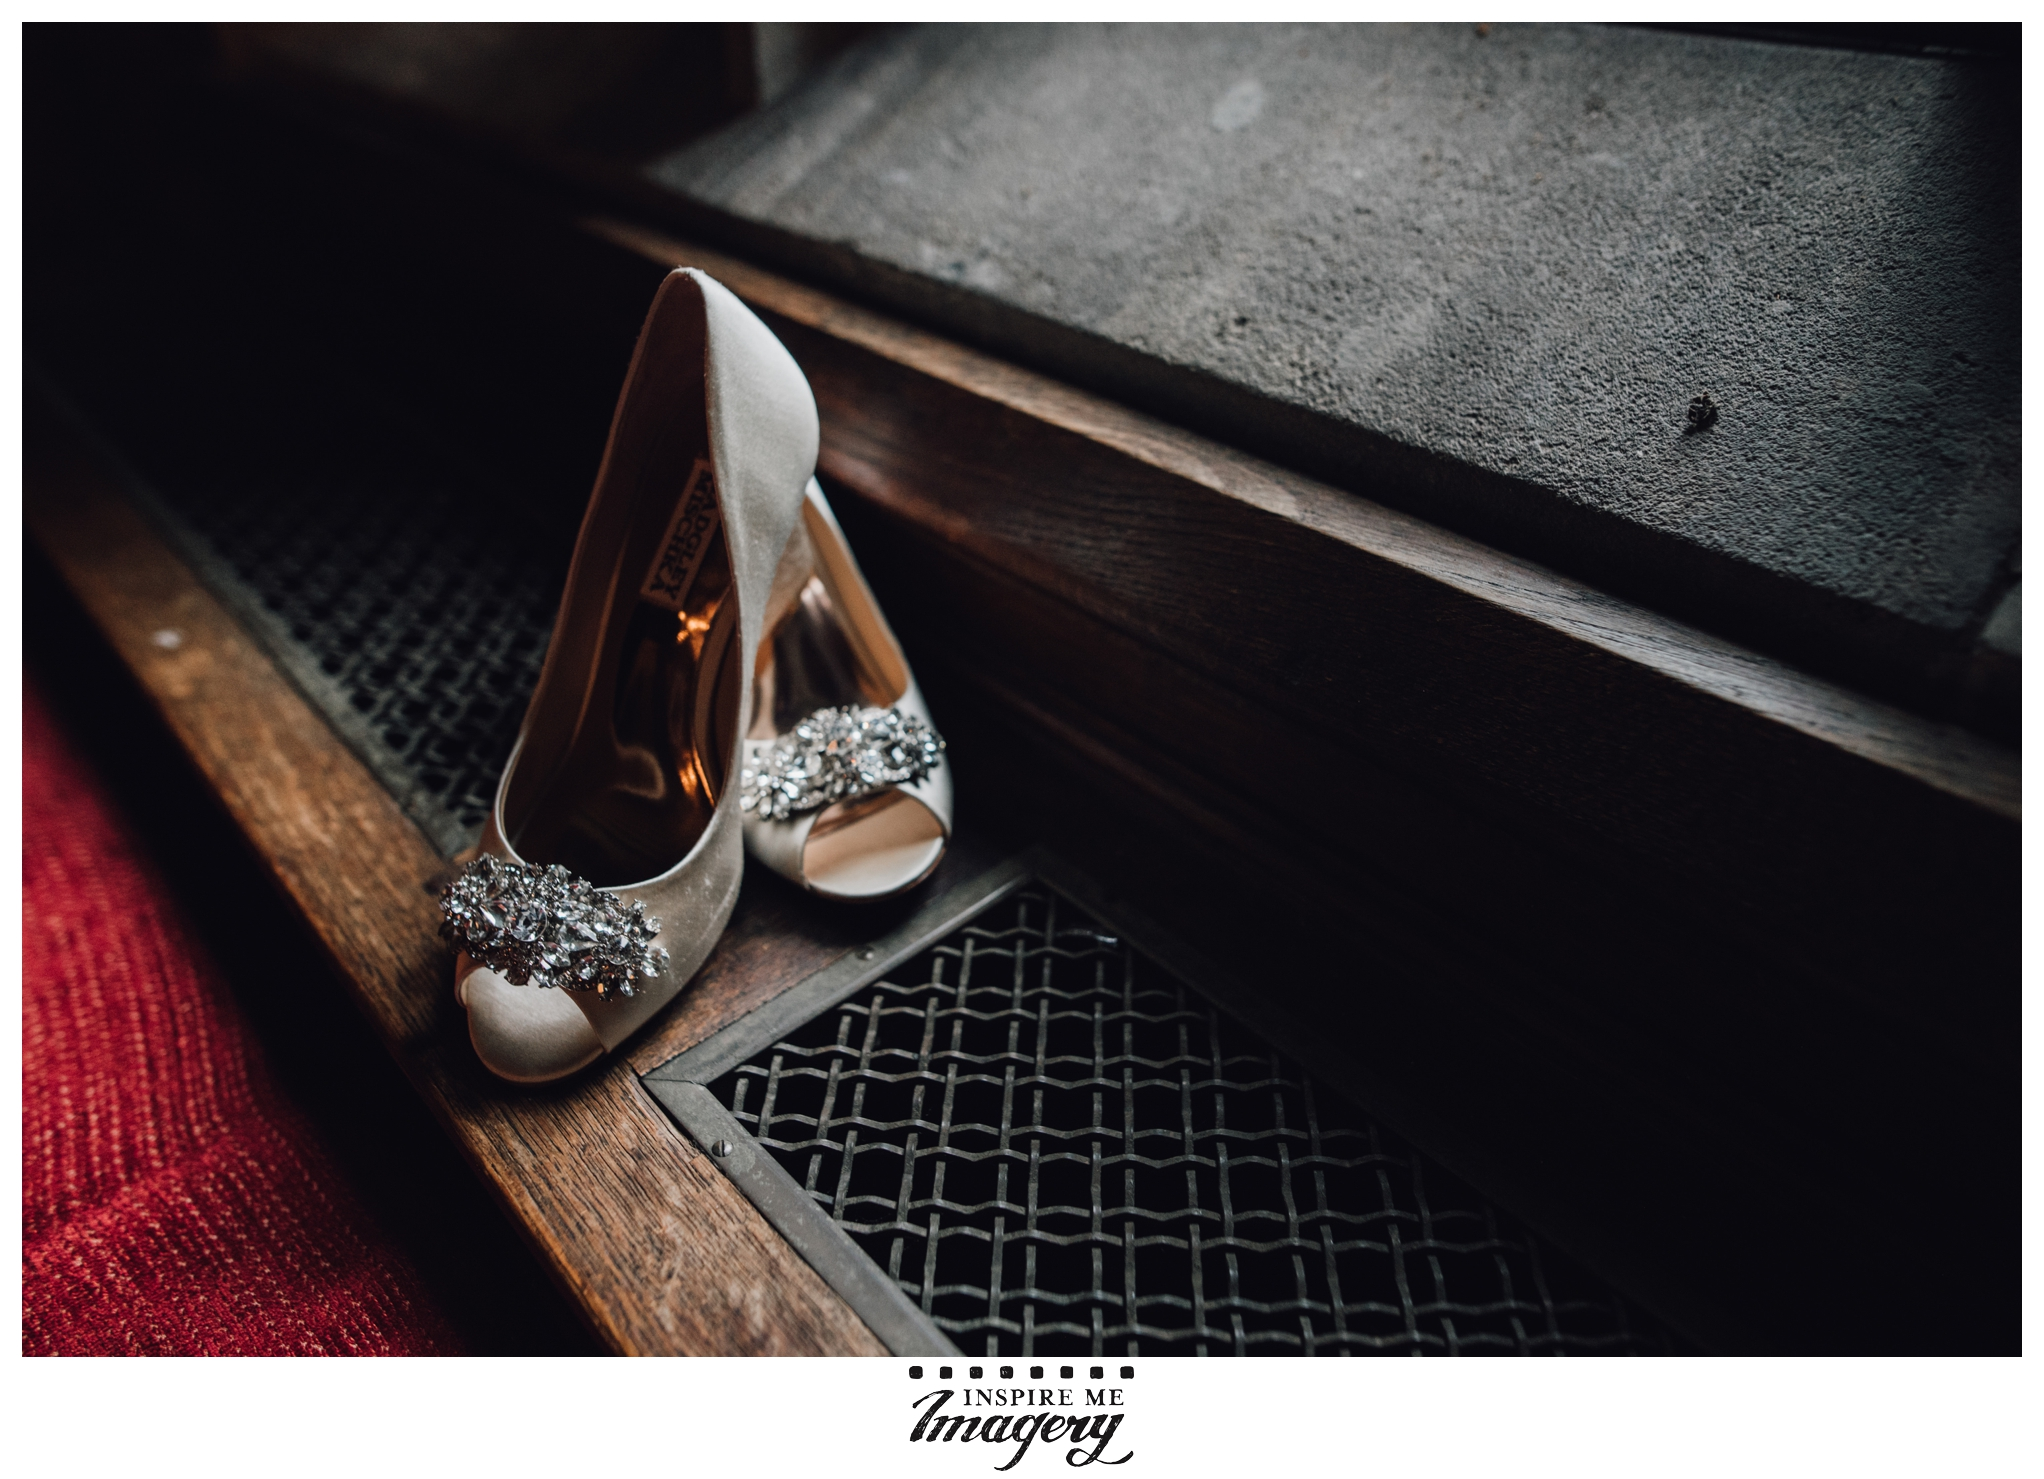 The bride's shoes sit in soft window light against the rich tones of the metalwork, the old wood, and the red carpeting.